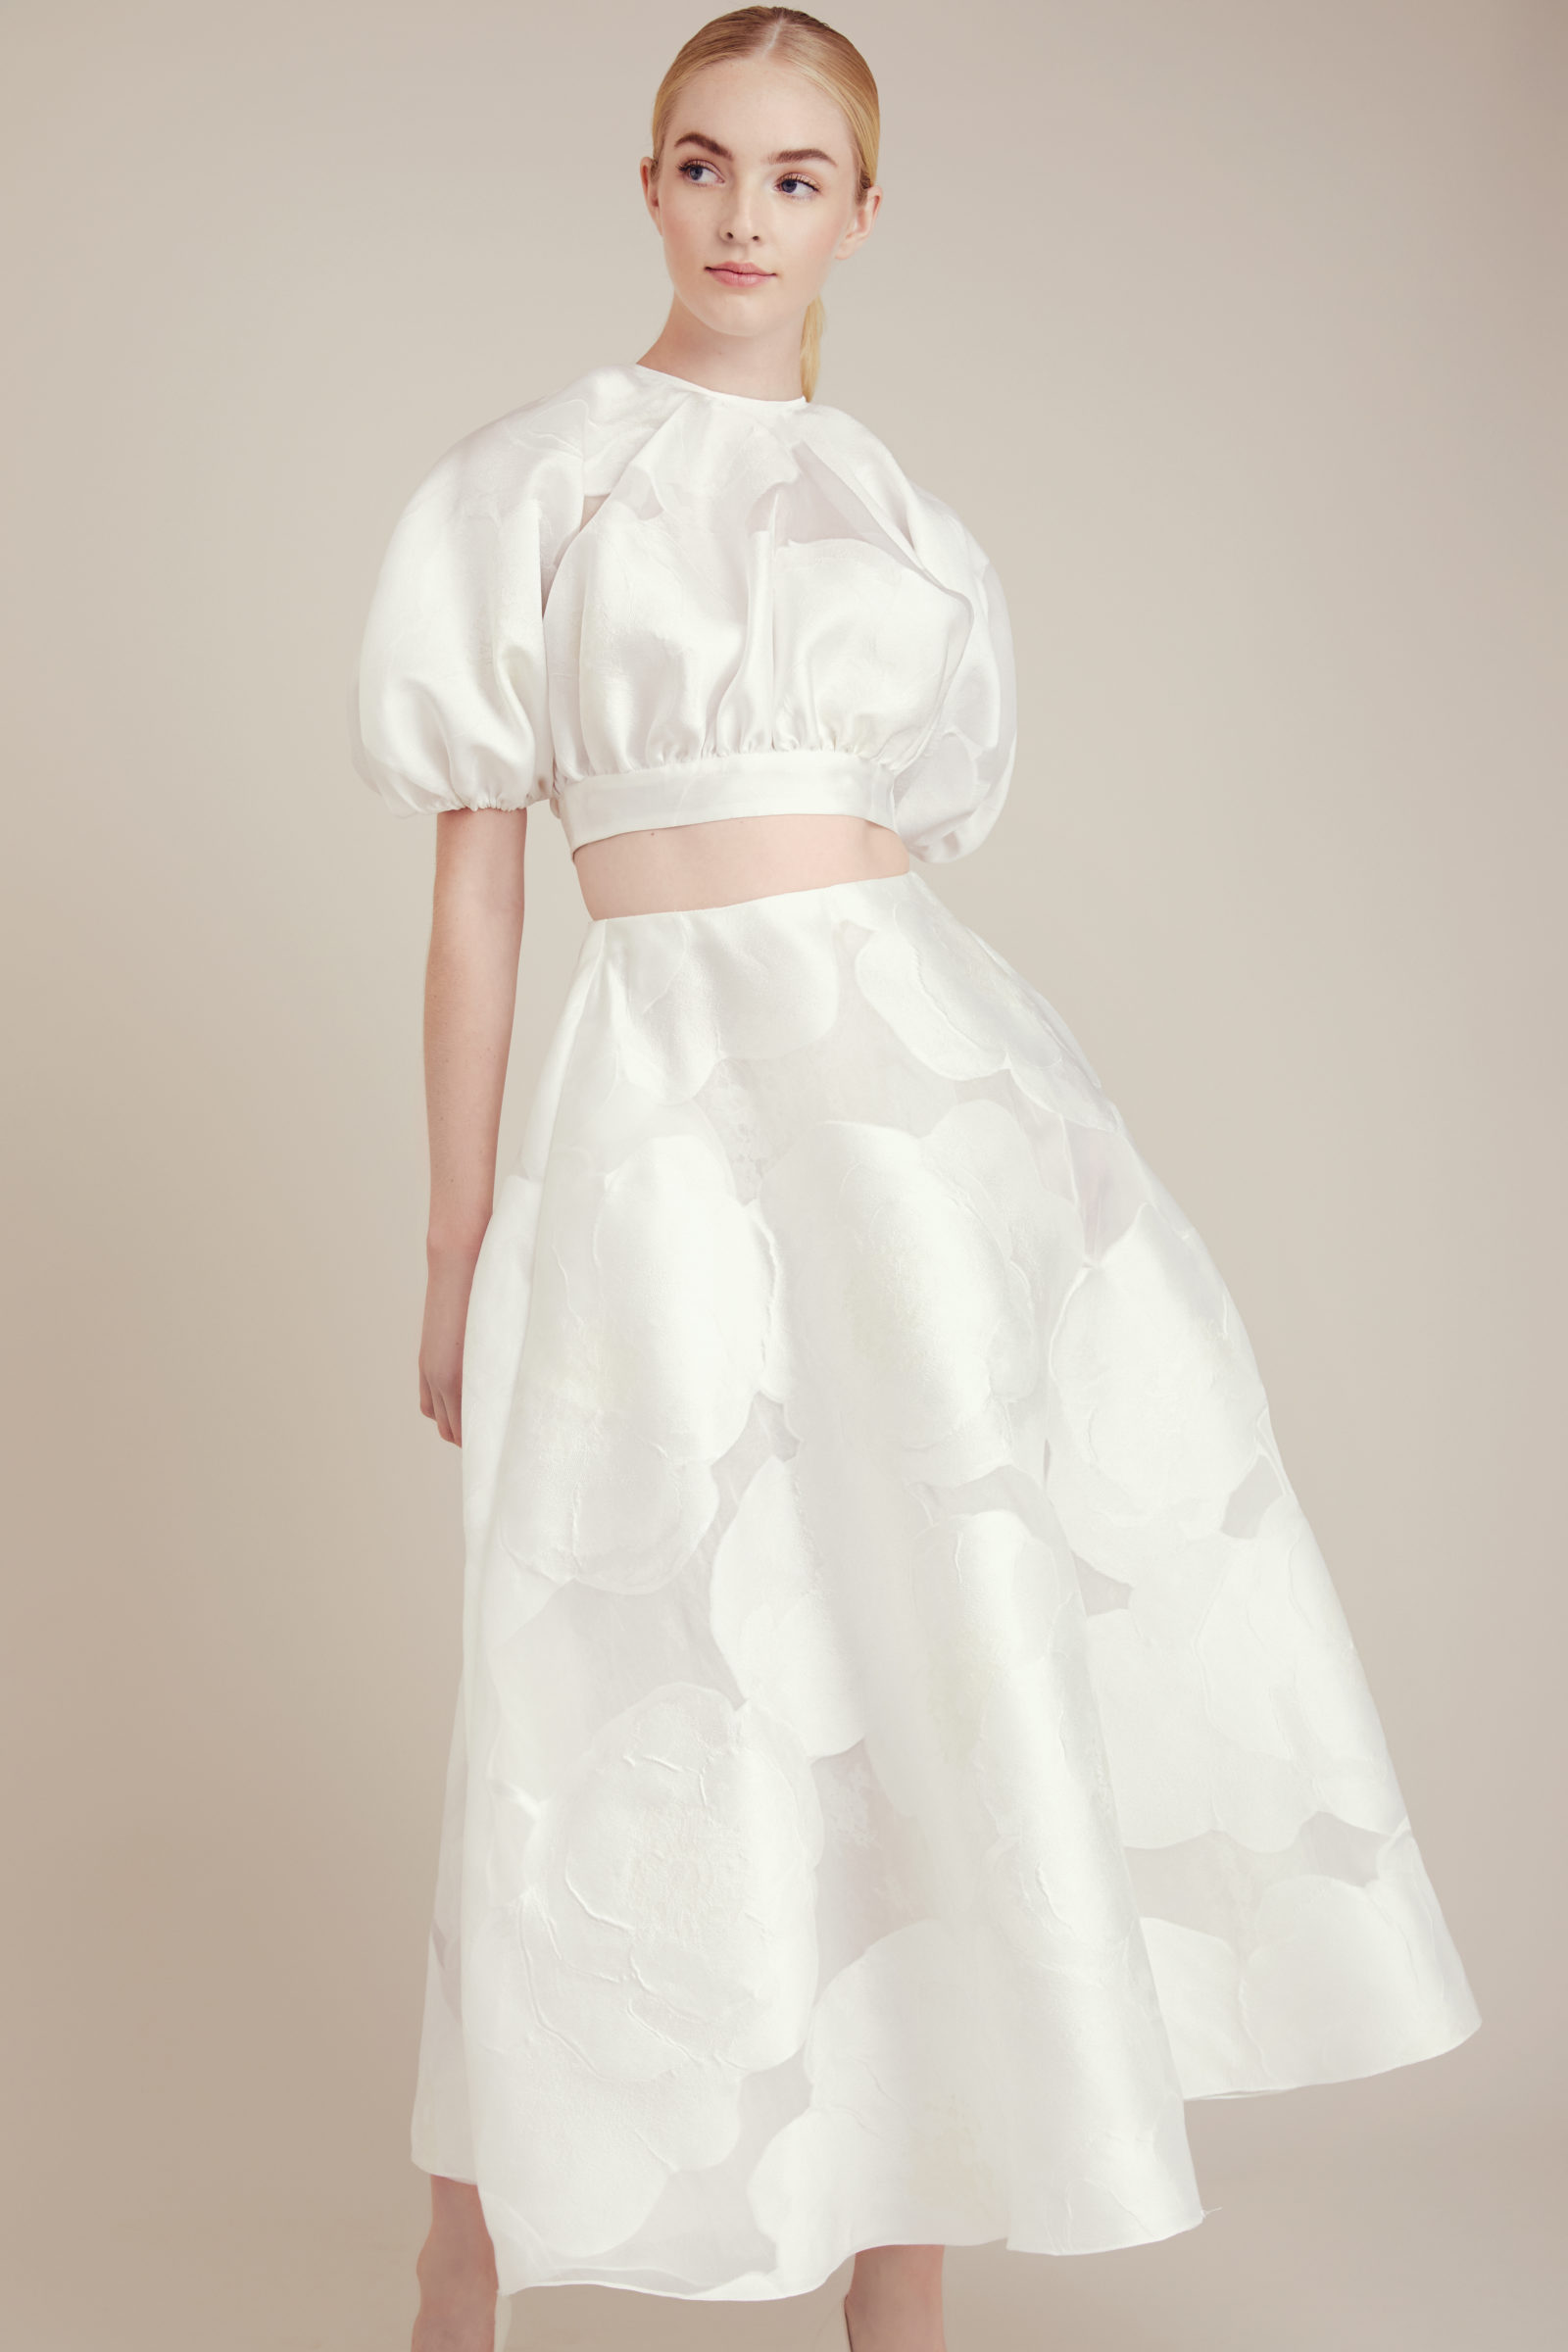 Crop top and skirt bridal outfit